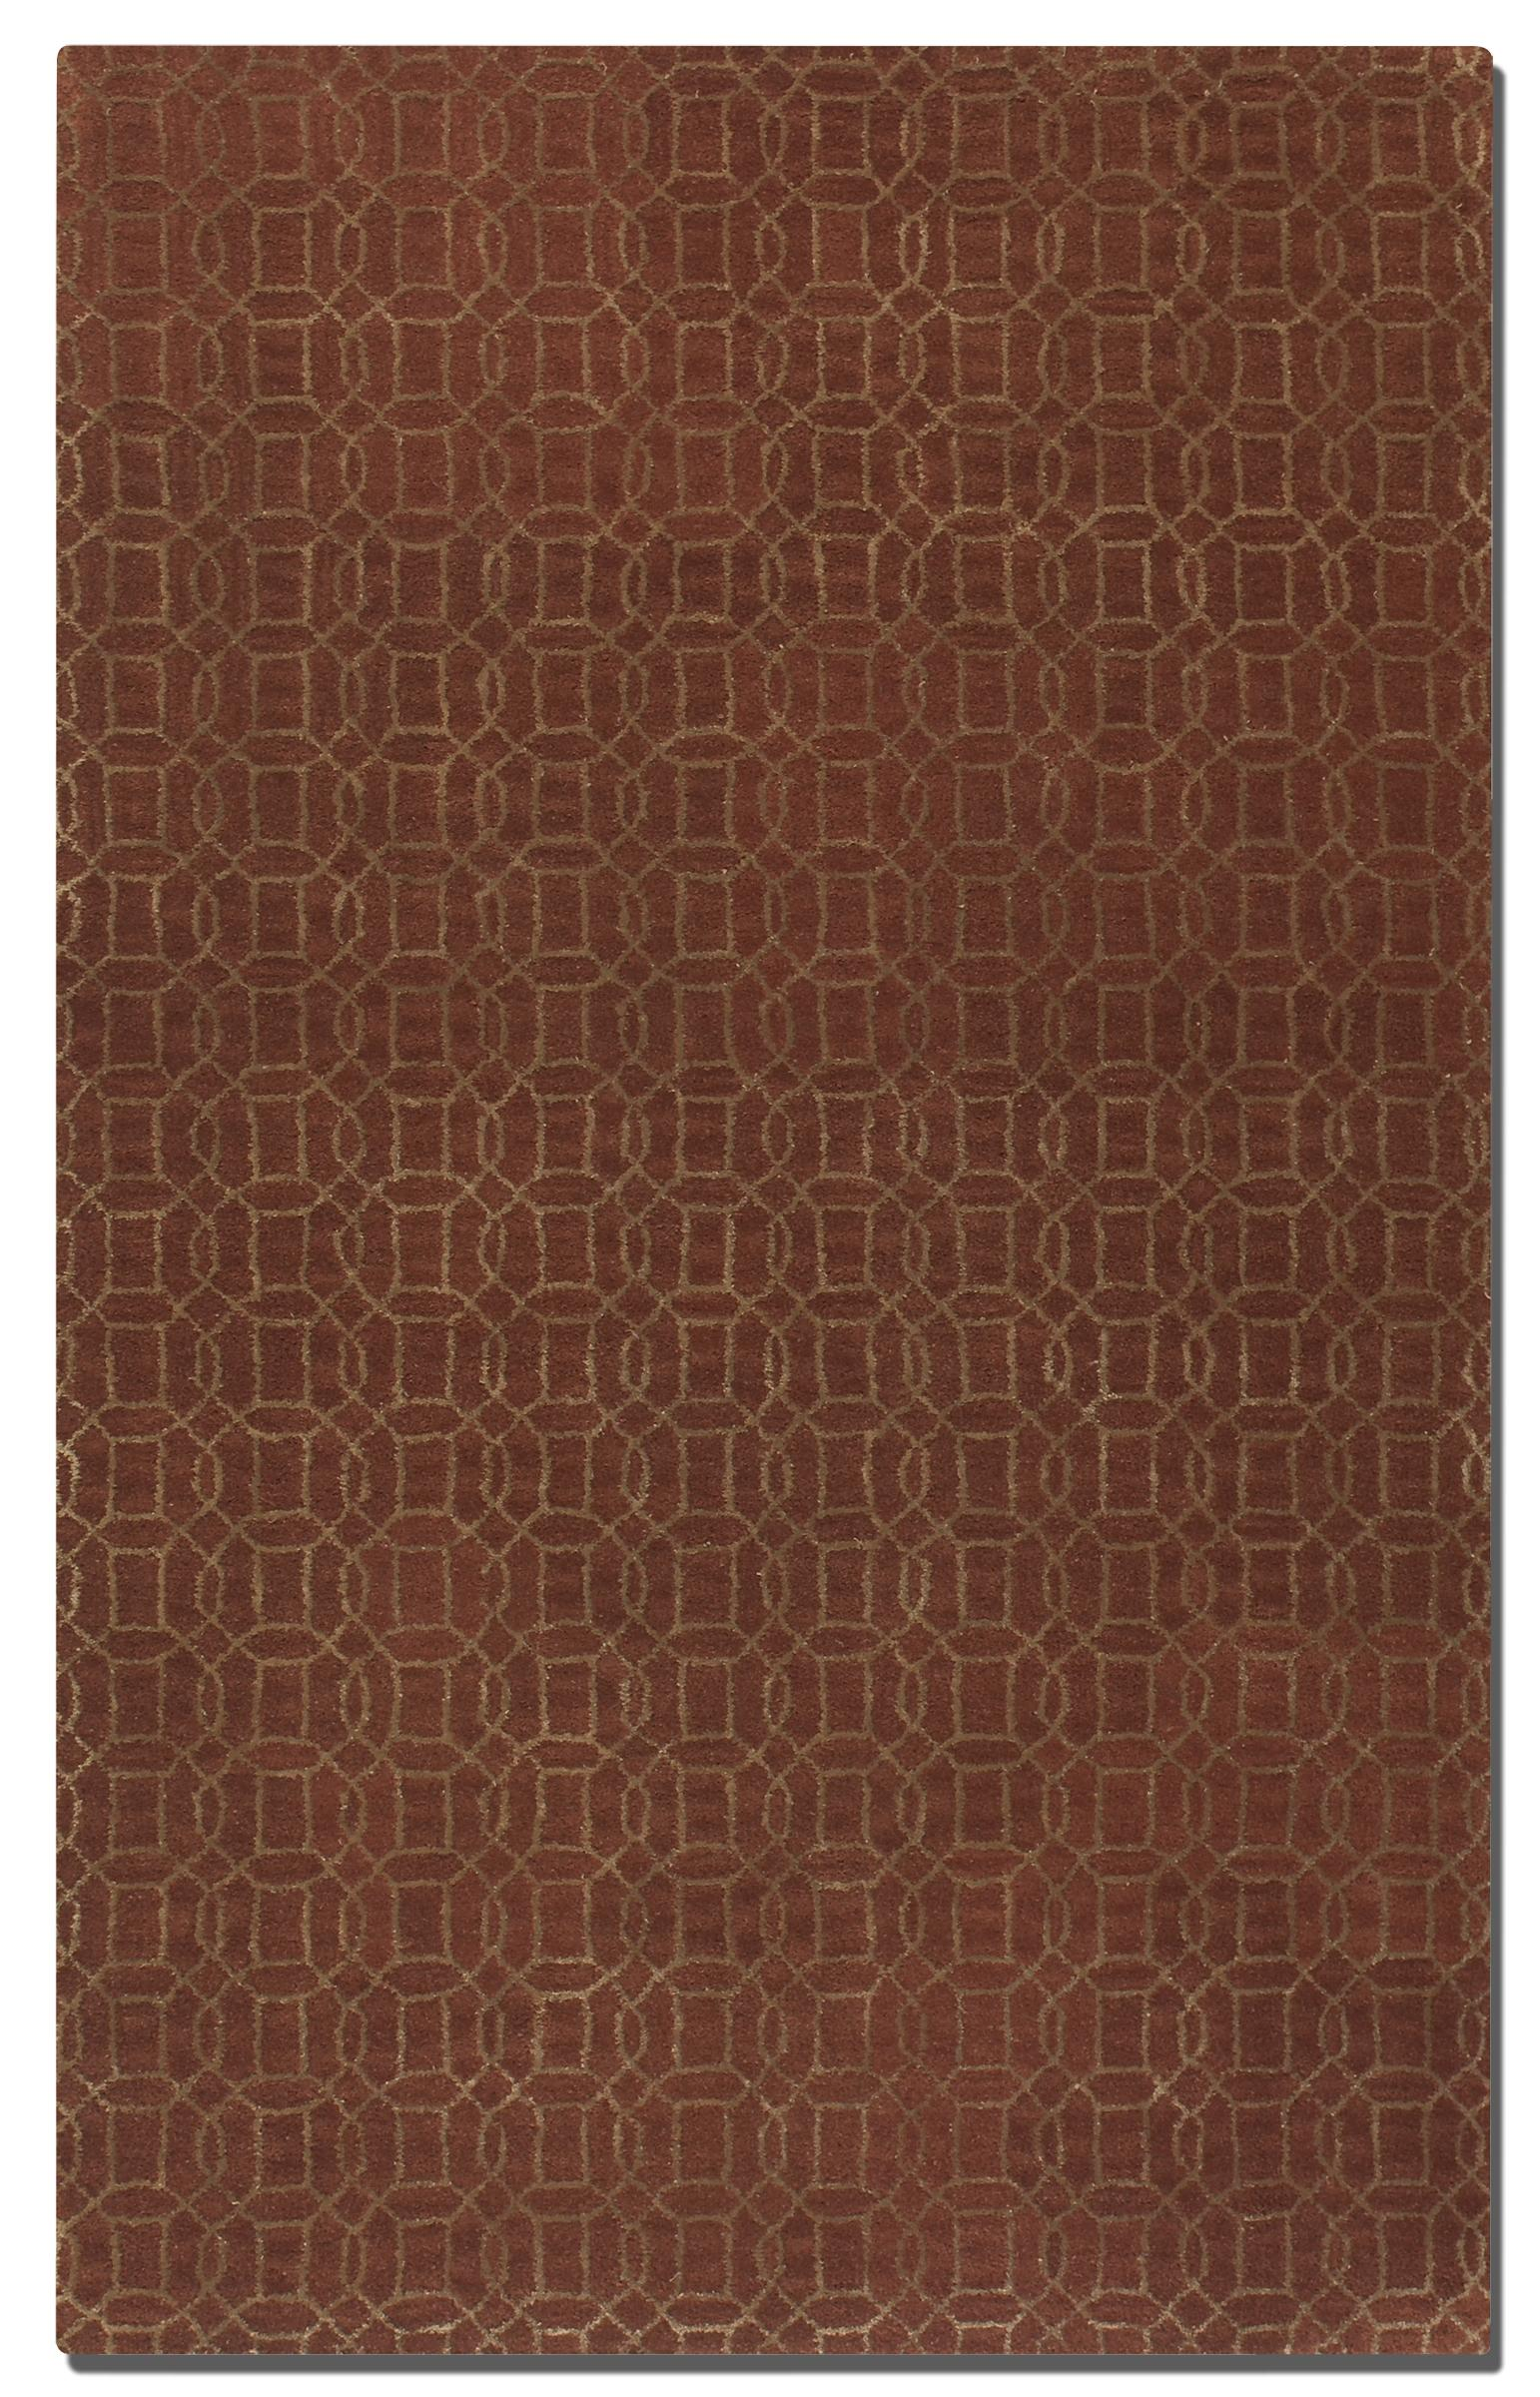 Uttermost Rugs Cambridge 9 X 12  - Item Number: 73029-9